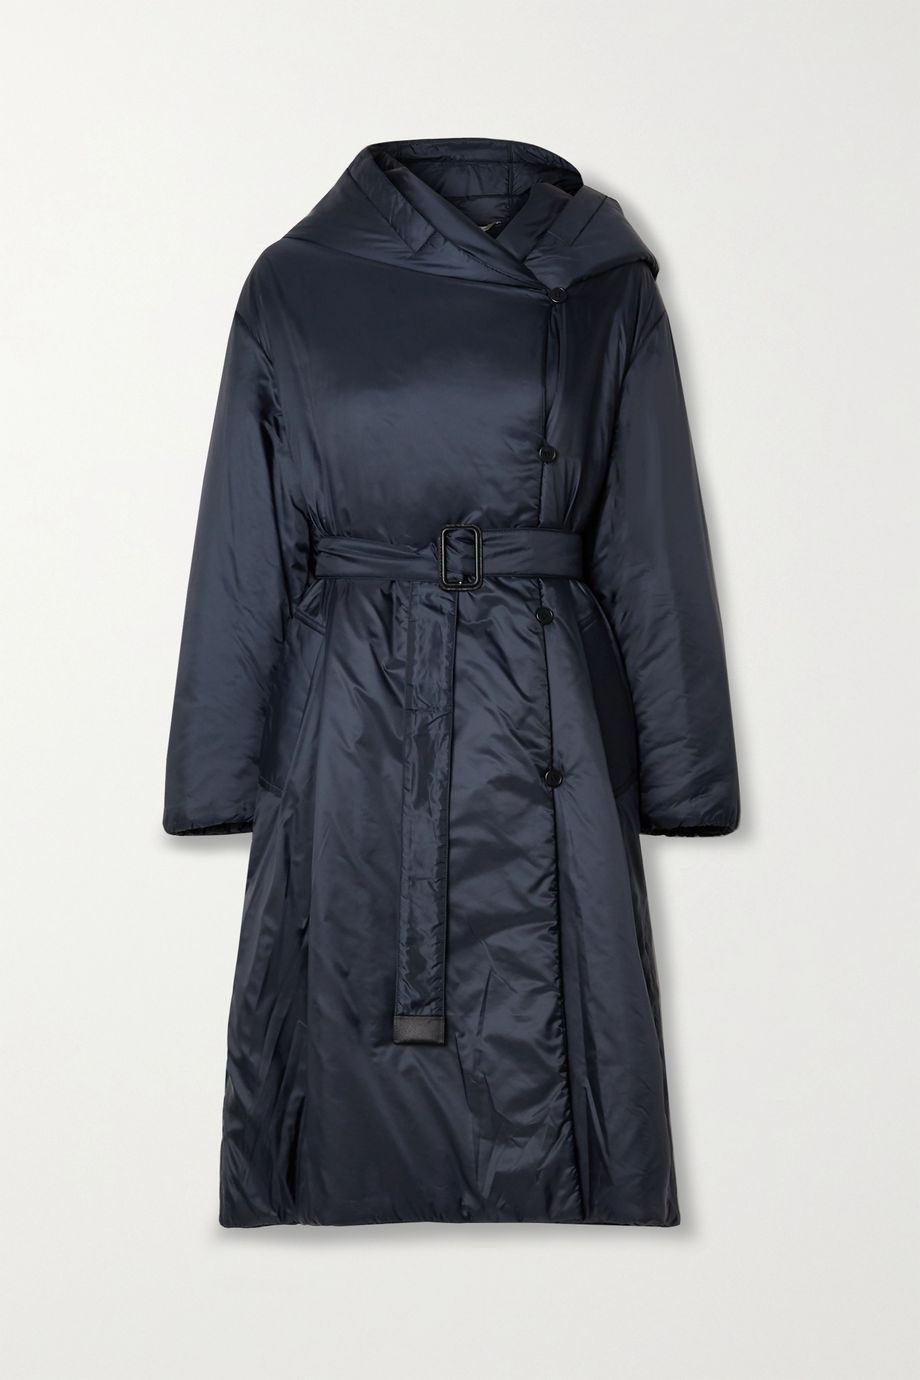 Max Mara The Cube Cameluxe belted hooded padded shell coat